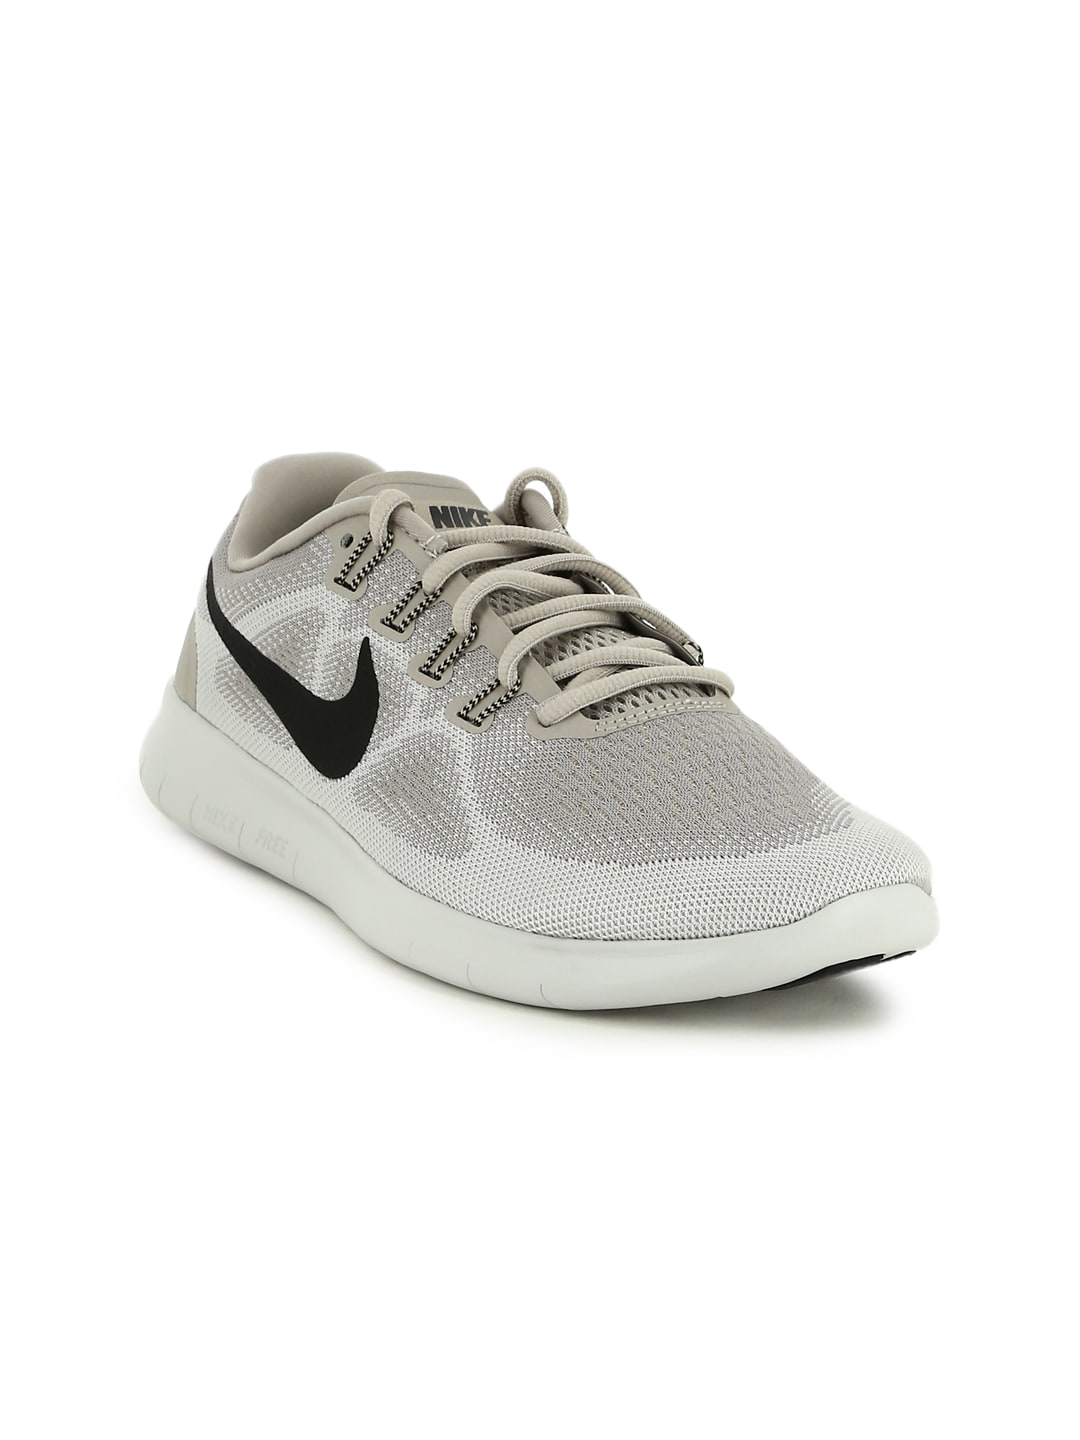 Nike Shoes - Buy Nike Shoes for Men   Women Online  a64a8234b20